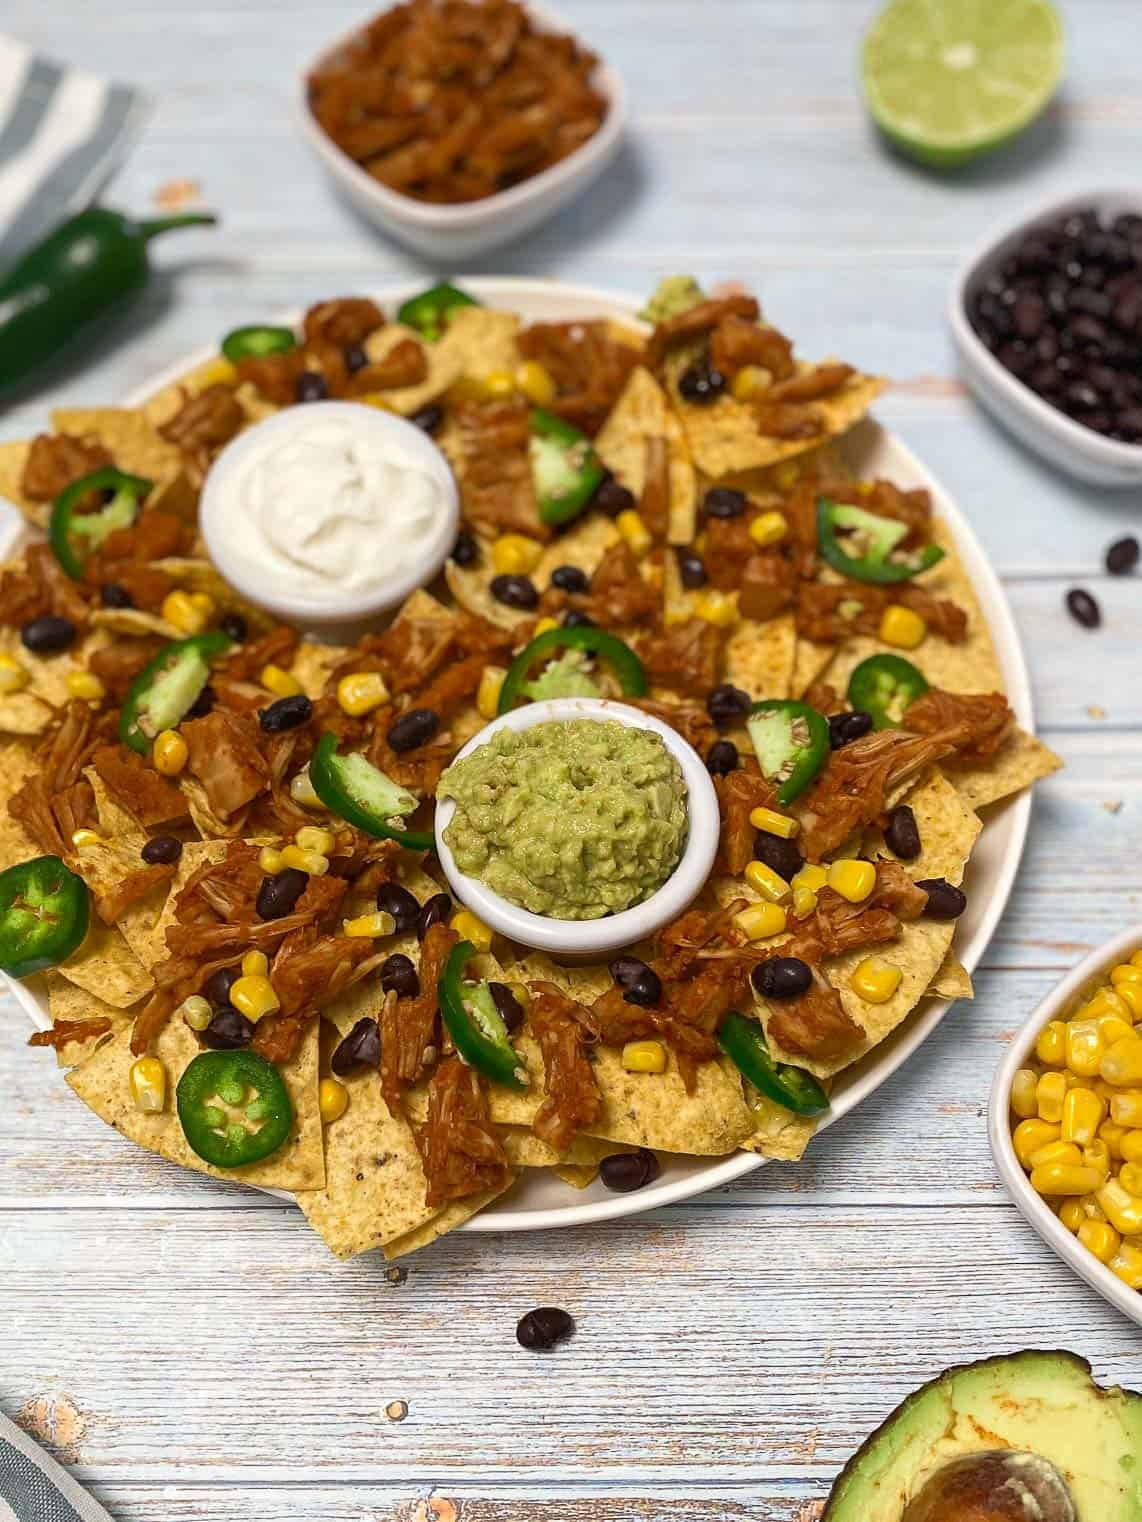 platter of tortilla chips with jackfruit, jalapeno and corn on top